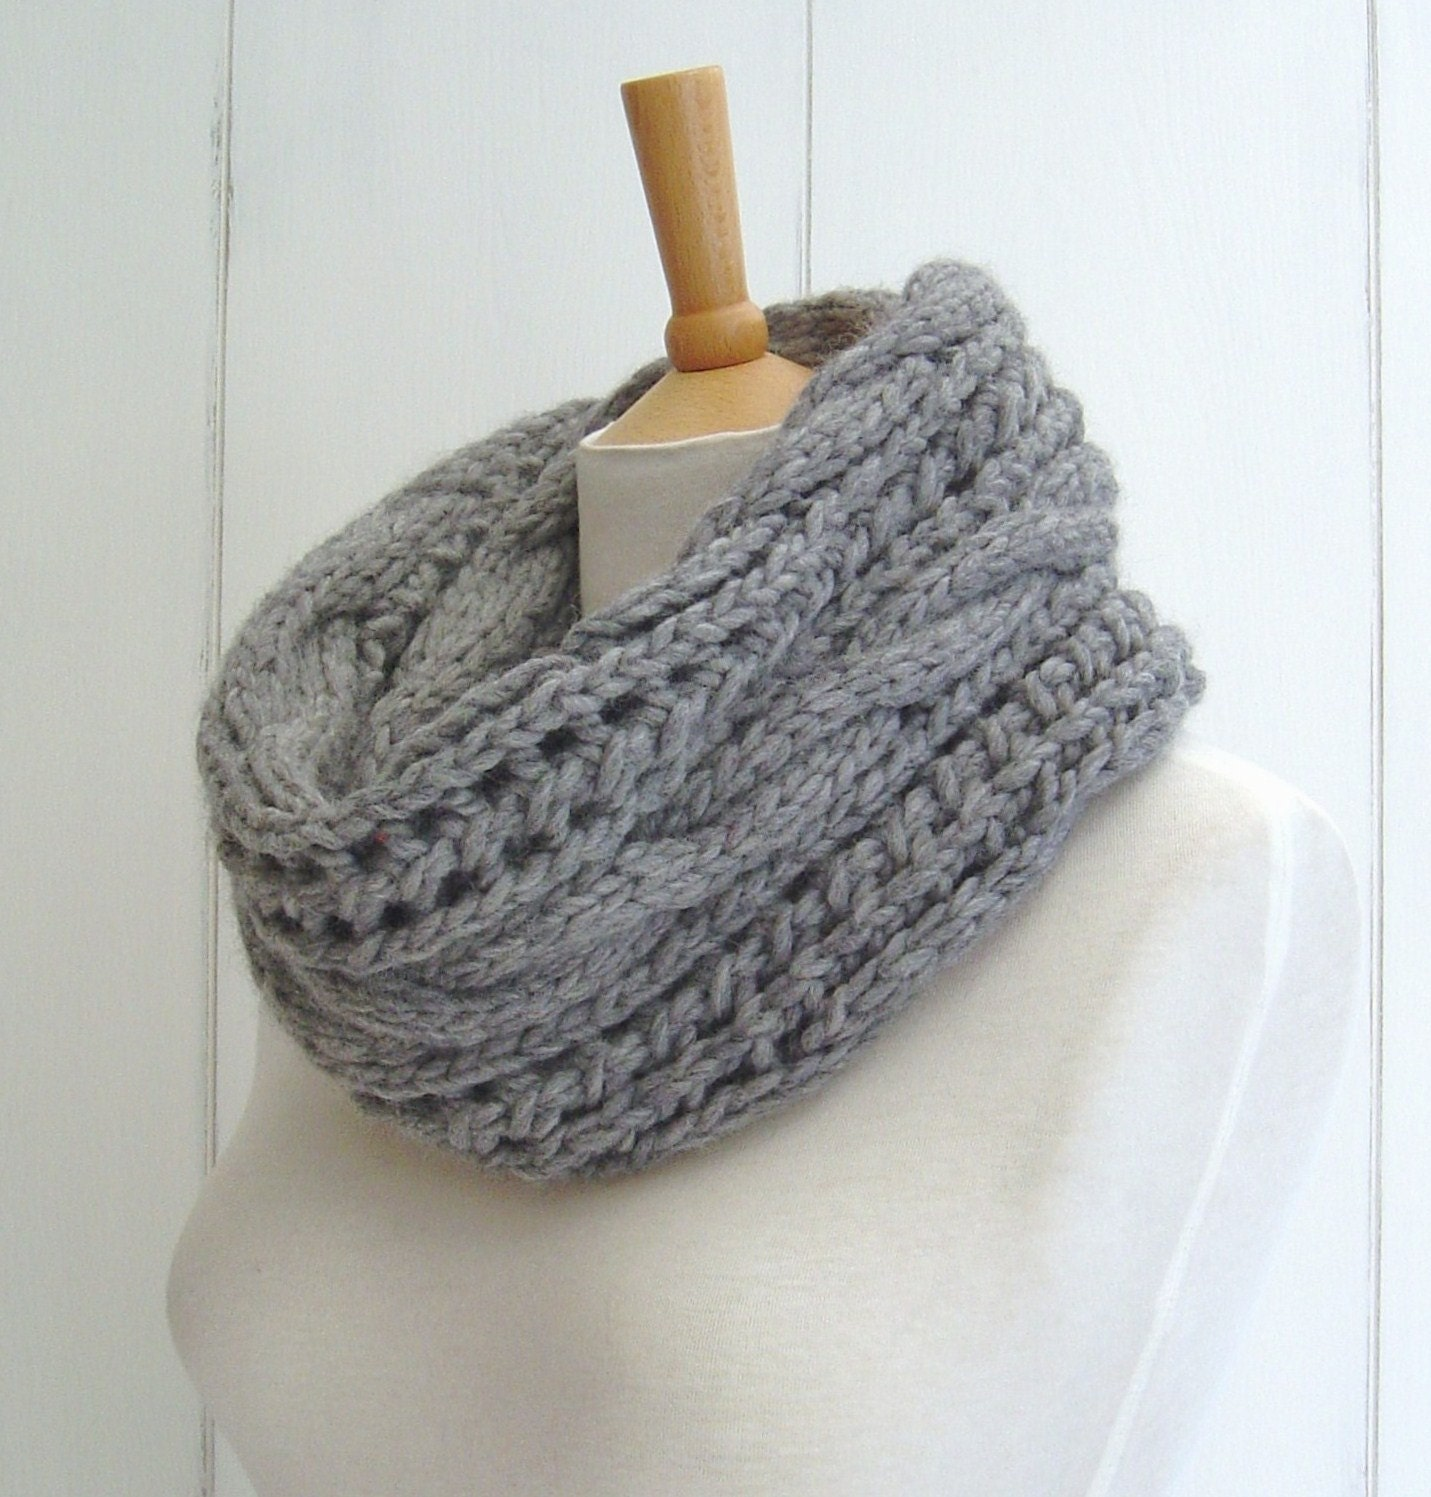 KNITTING PATTERN for Chunky Cable Lace Infinity Scarf Instant